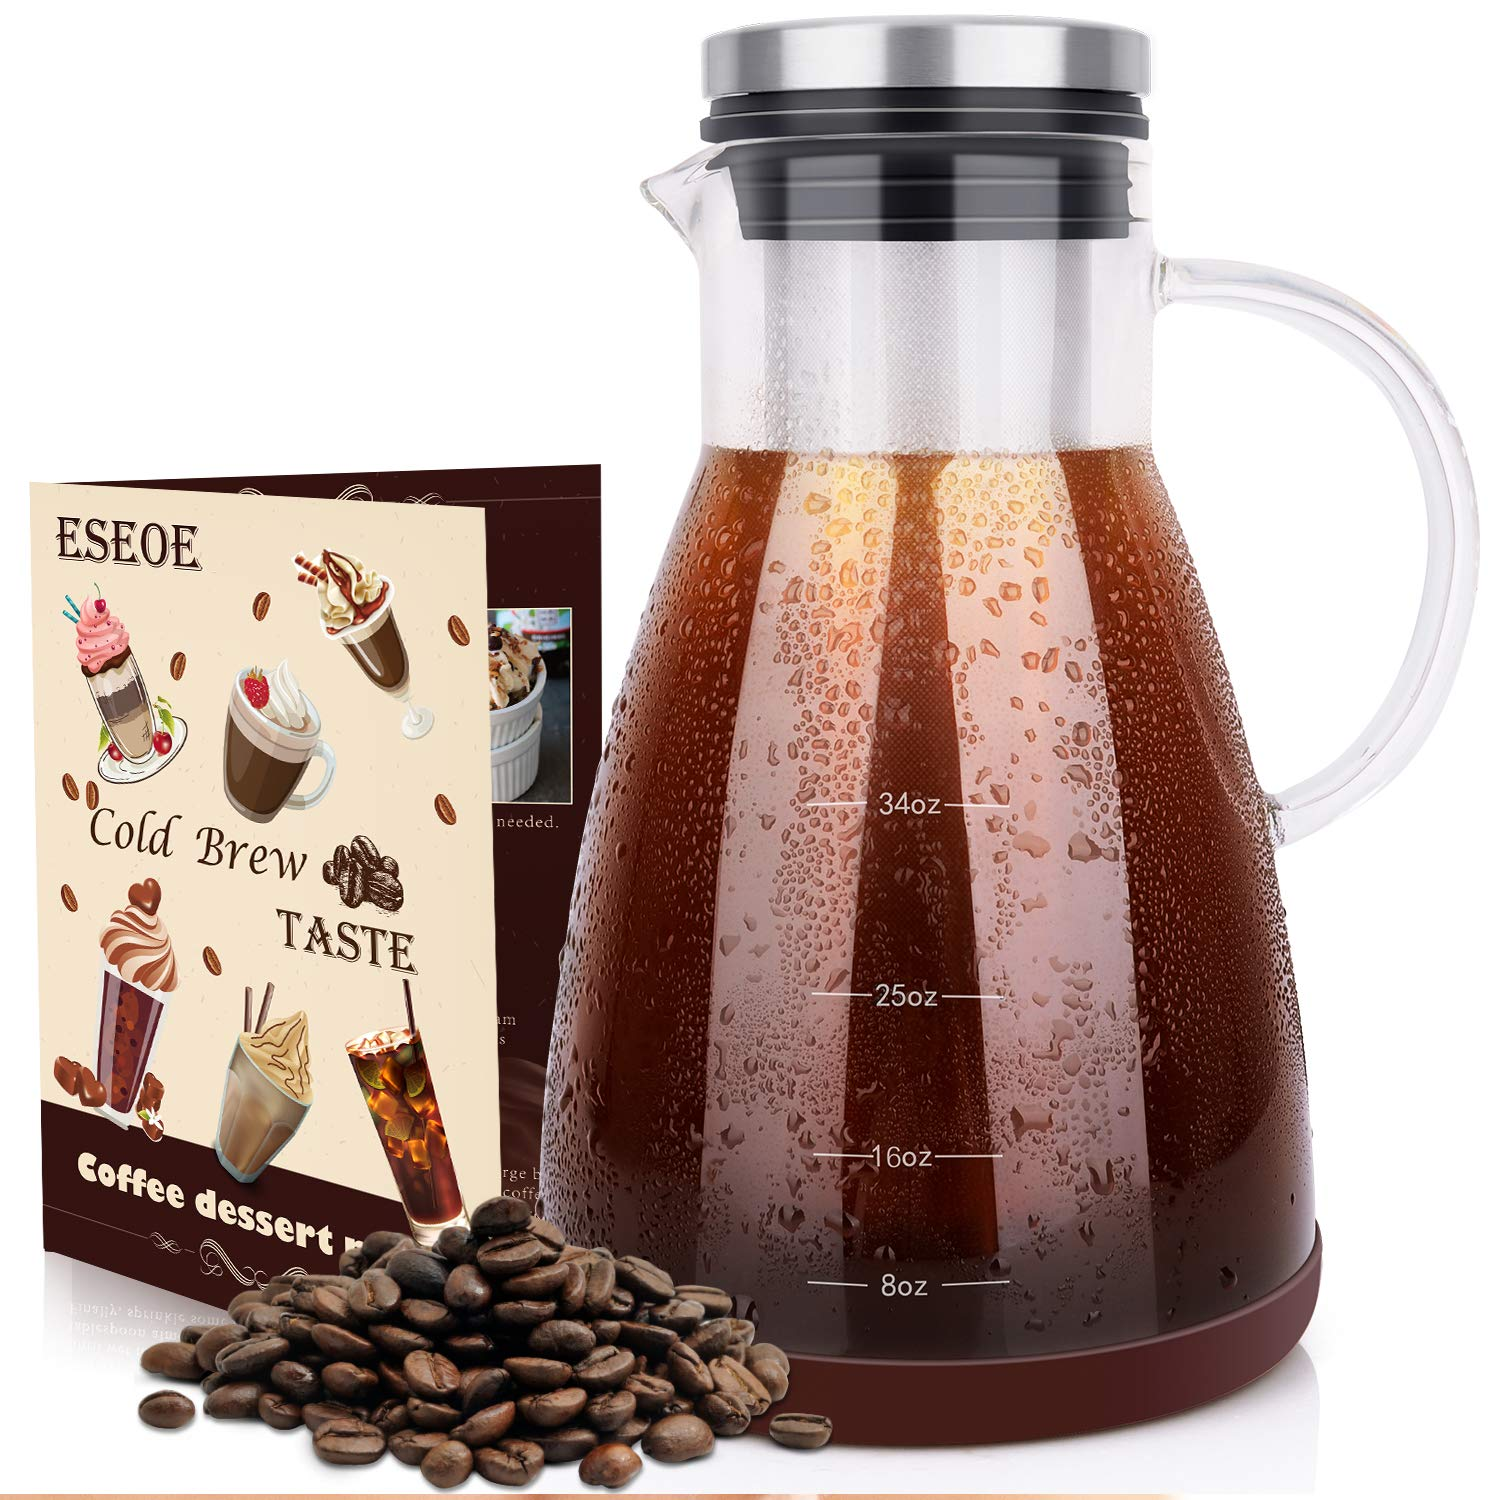 ESEOE Cold Brew Coffee Maker, Glass Pitcher Cold Brewer with Removable Filter - Perfect for DIY Brew Iced Coffee (Borosilicate Glass) by ESEOE